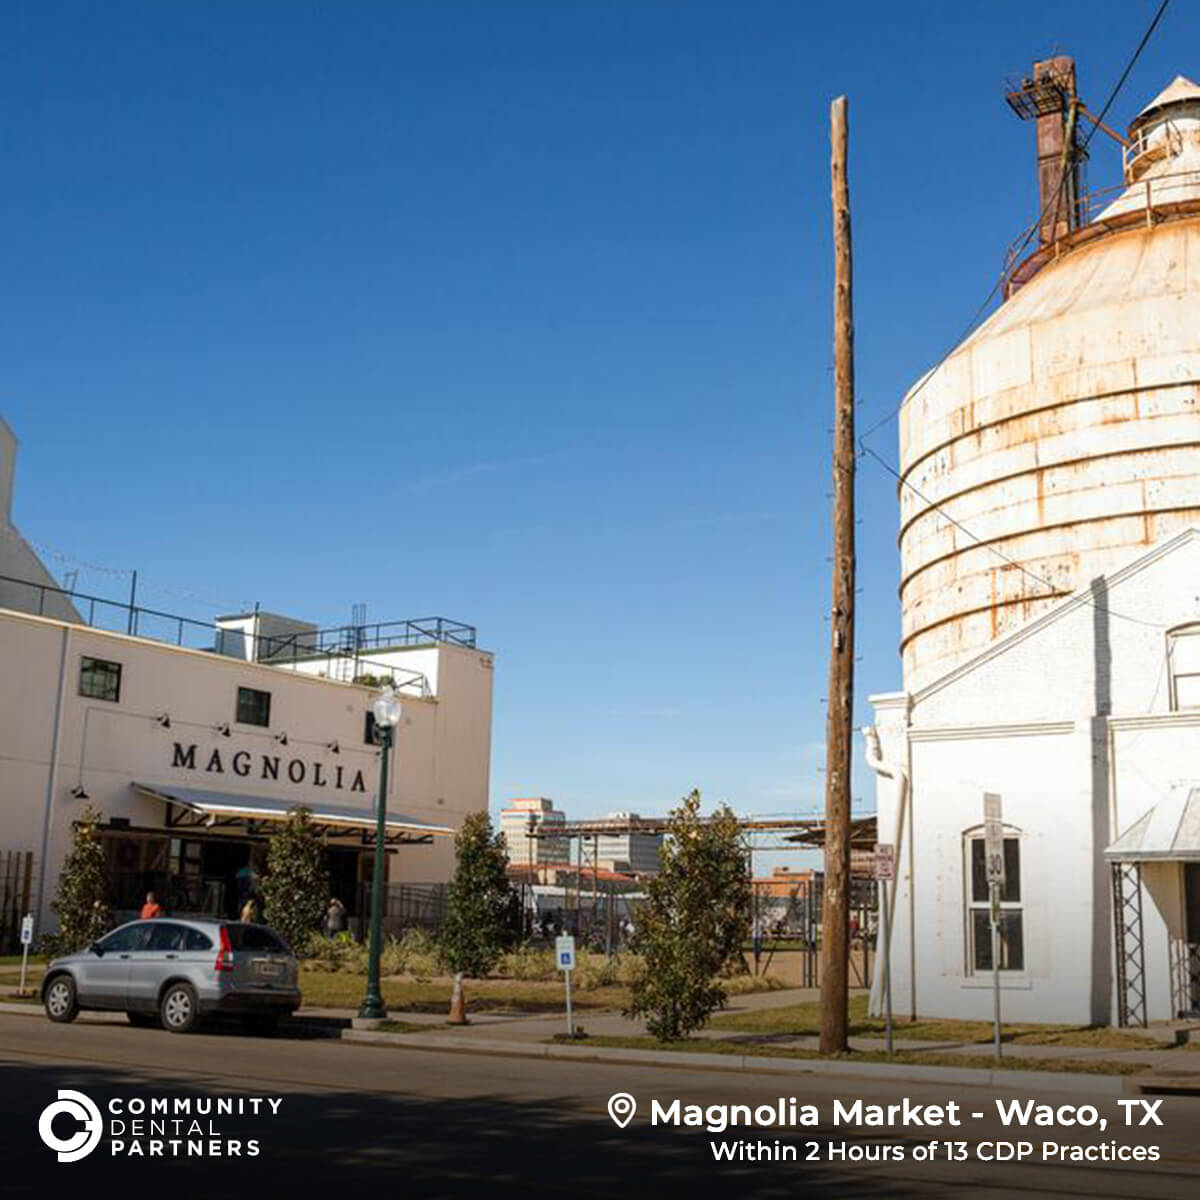 A photo of Magnolia Market in Waco, TX, just one of the amazing places you can visit in Texas. The Market is within 2 hours of 13 CDP Practices!